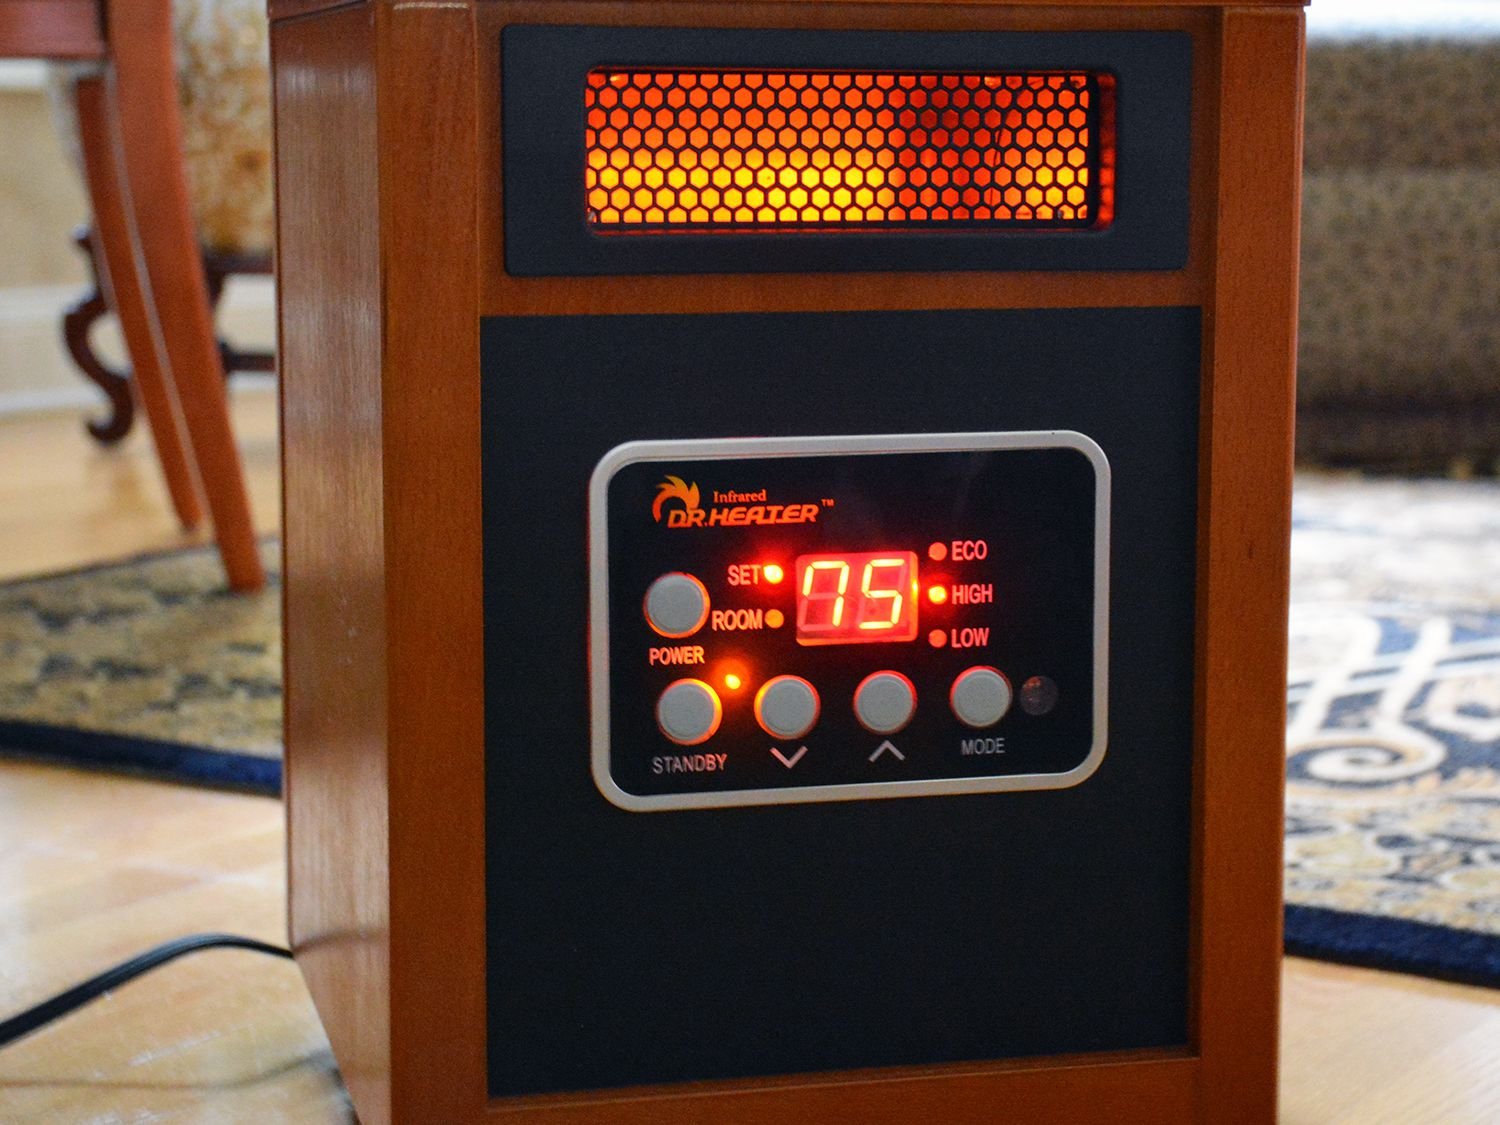 Dr Infrared Heater Portable Space Heater Review